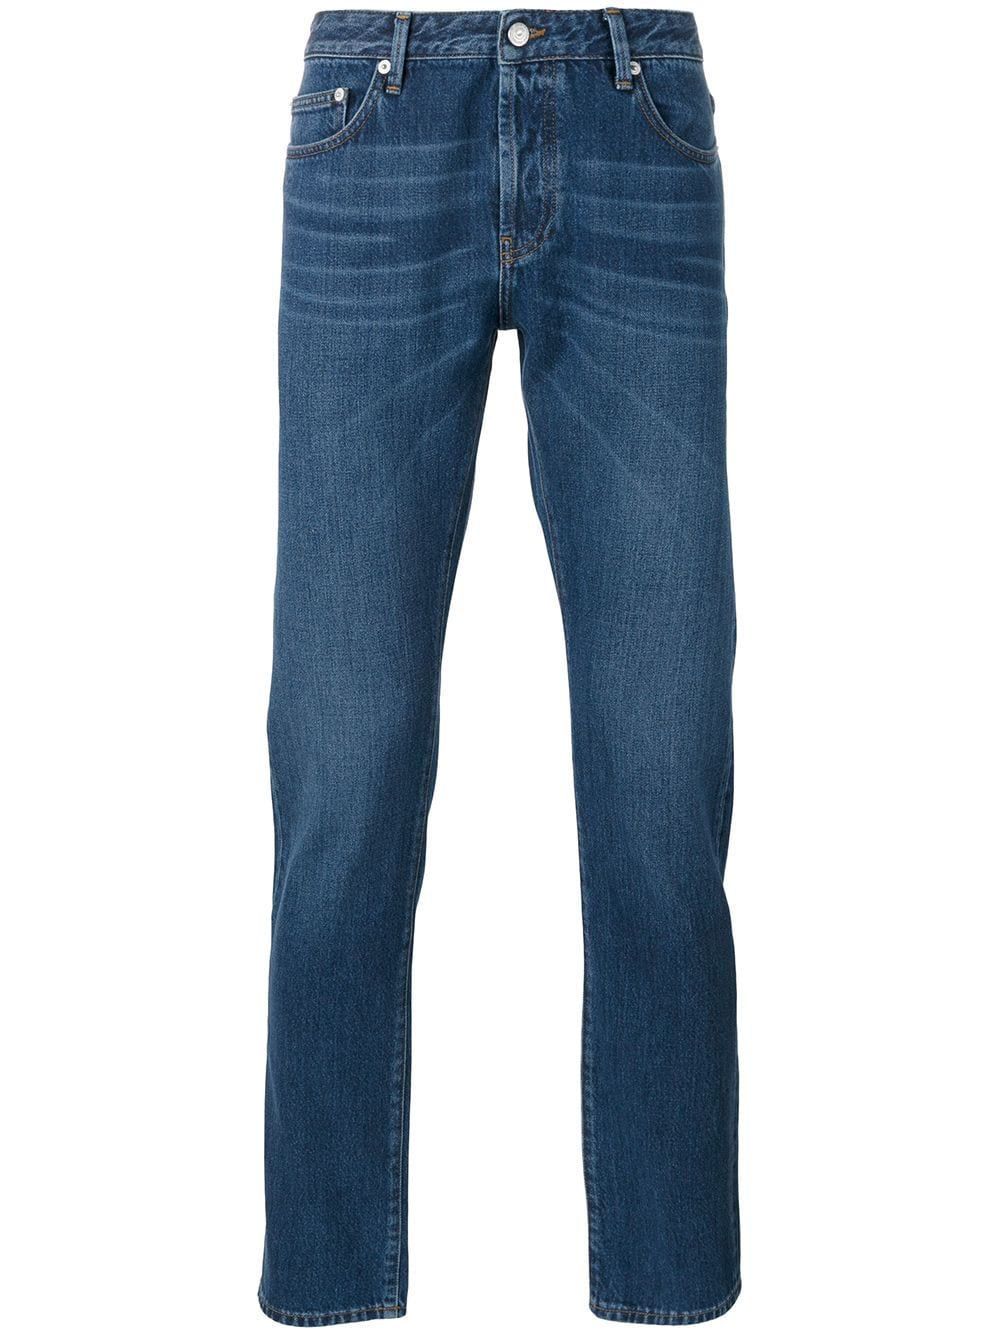 4ed6900da93 Officine Generale tapered jeans - Blue in 2019 | Products | Jeans ...